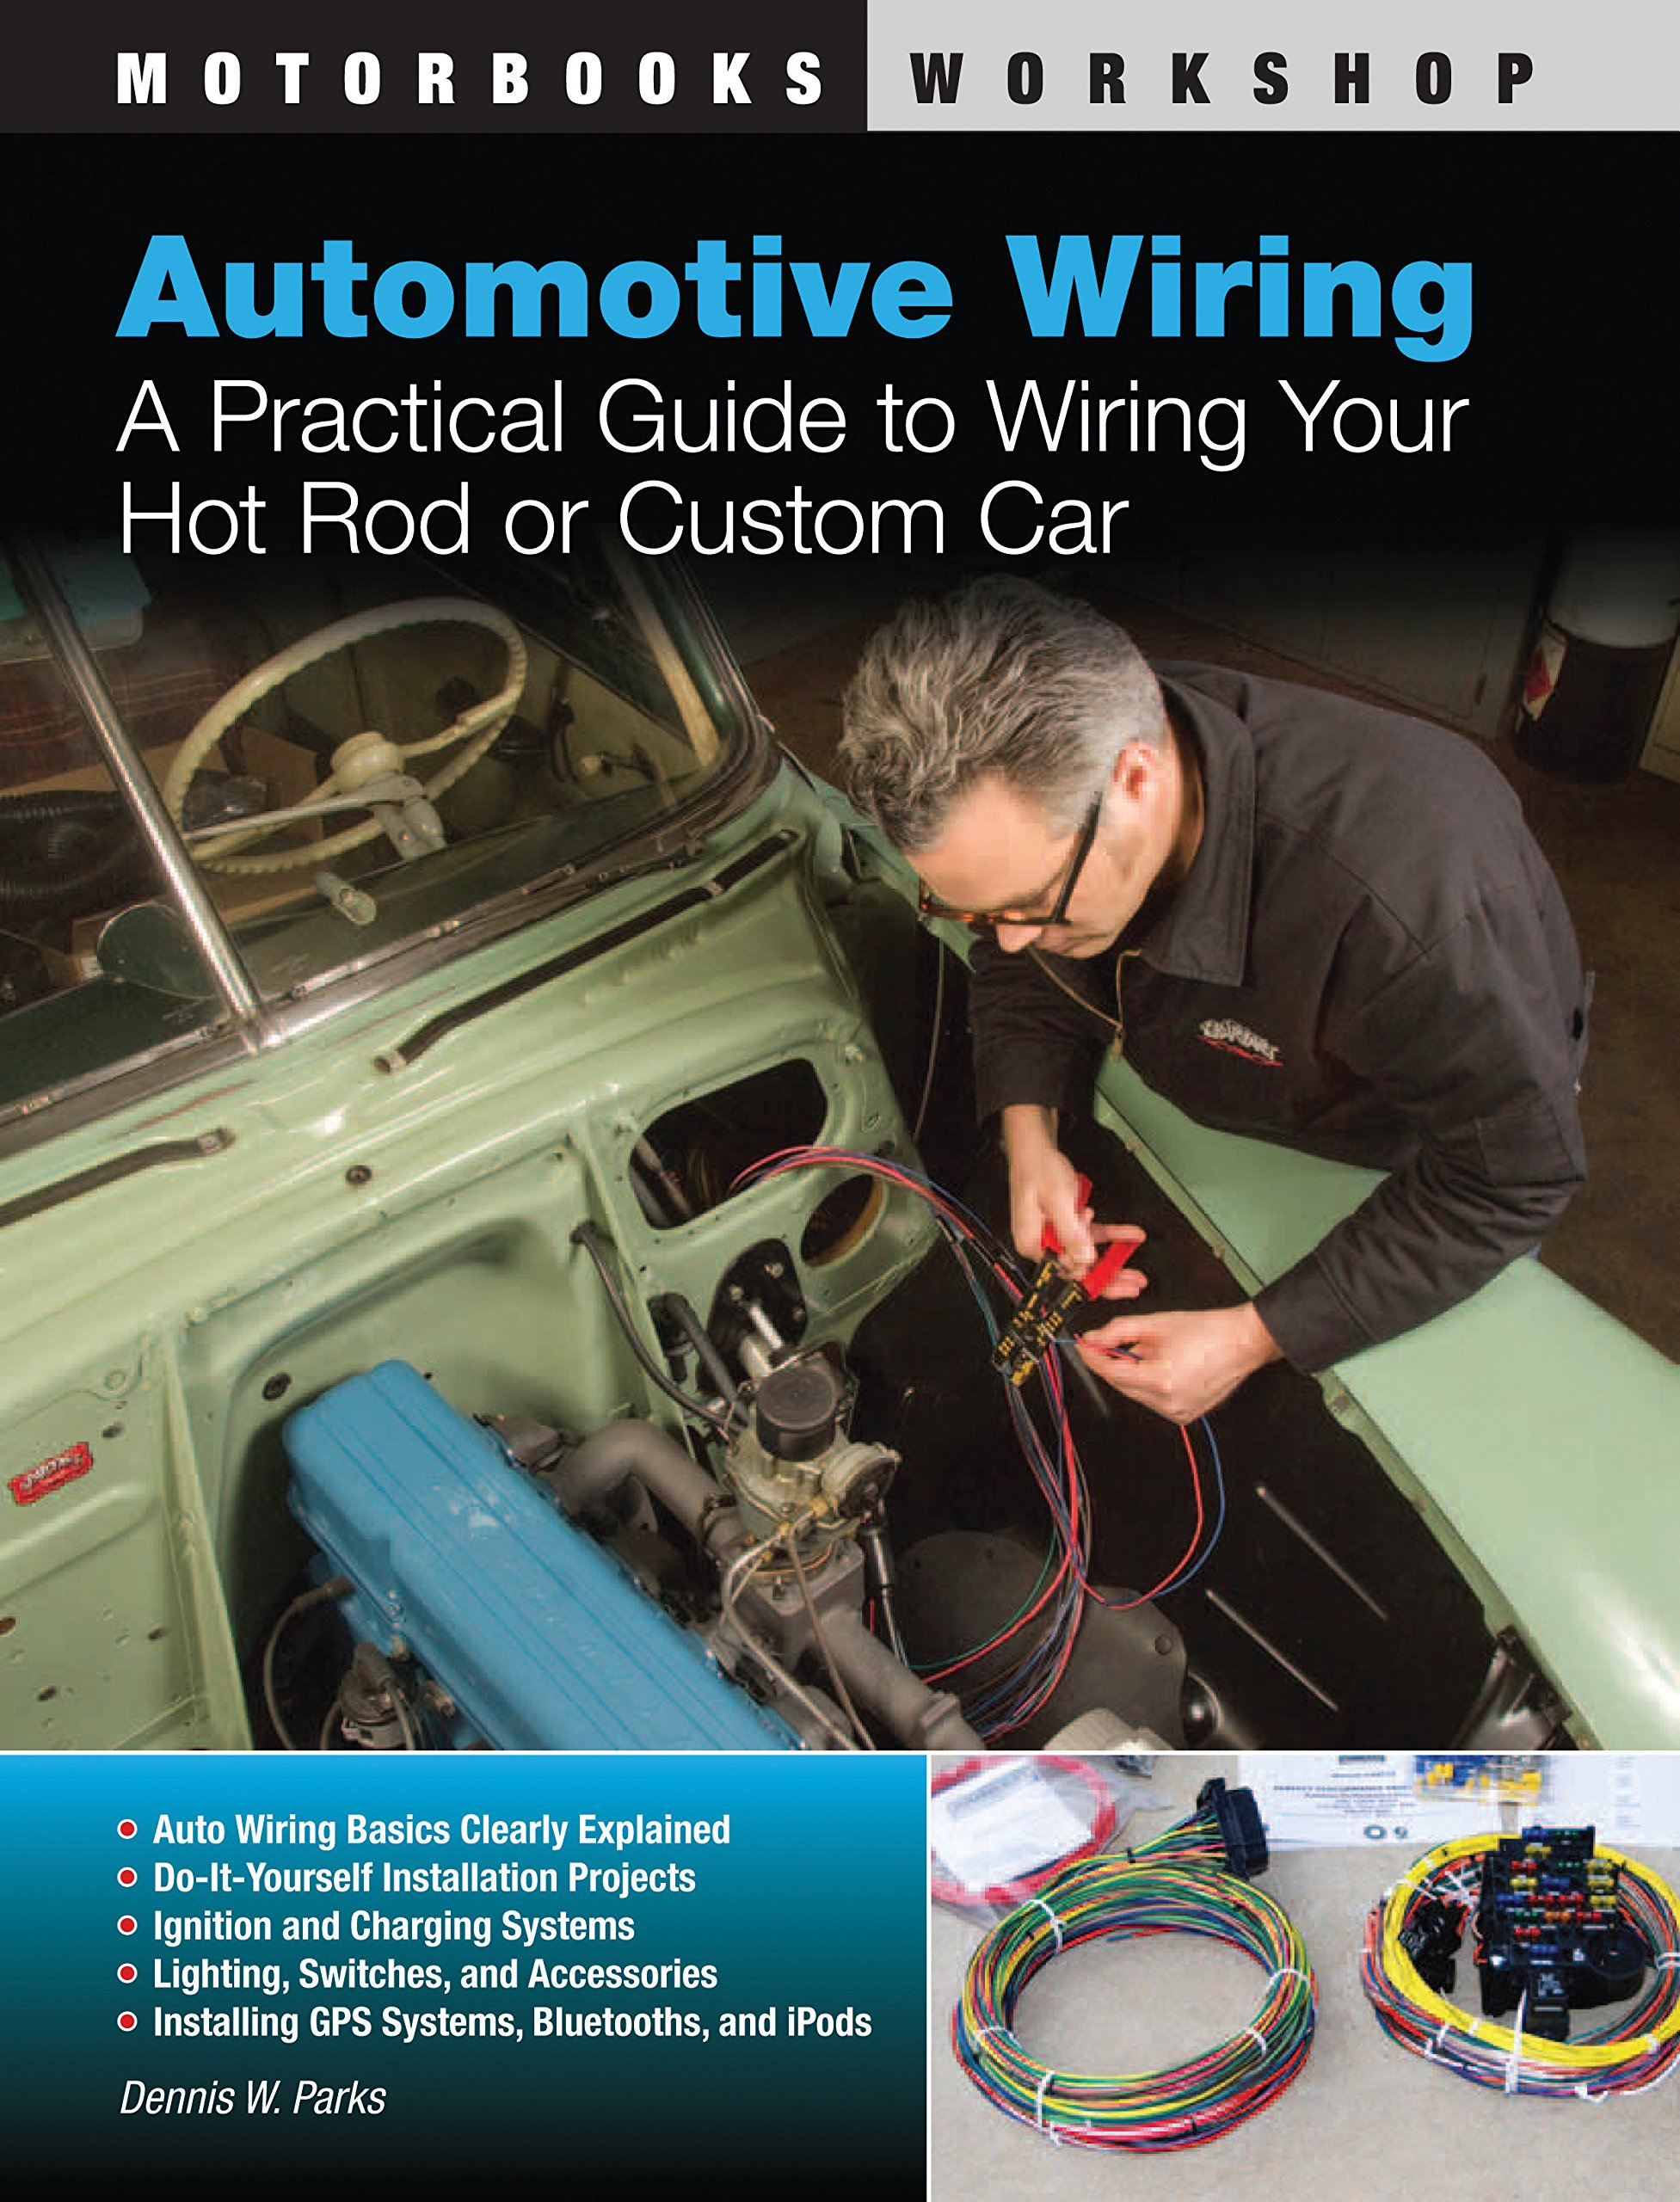 Automotive Wiring A Practical Guide To Your Hot Rod Or Advanced Race Car Custom Motorbooks Workshop Dennis W Parks John Kimbrough 0752748339927